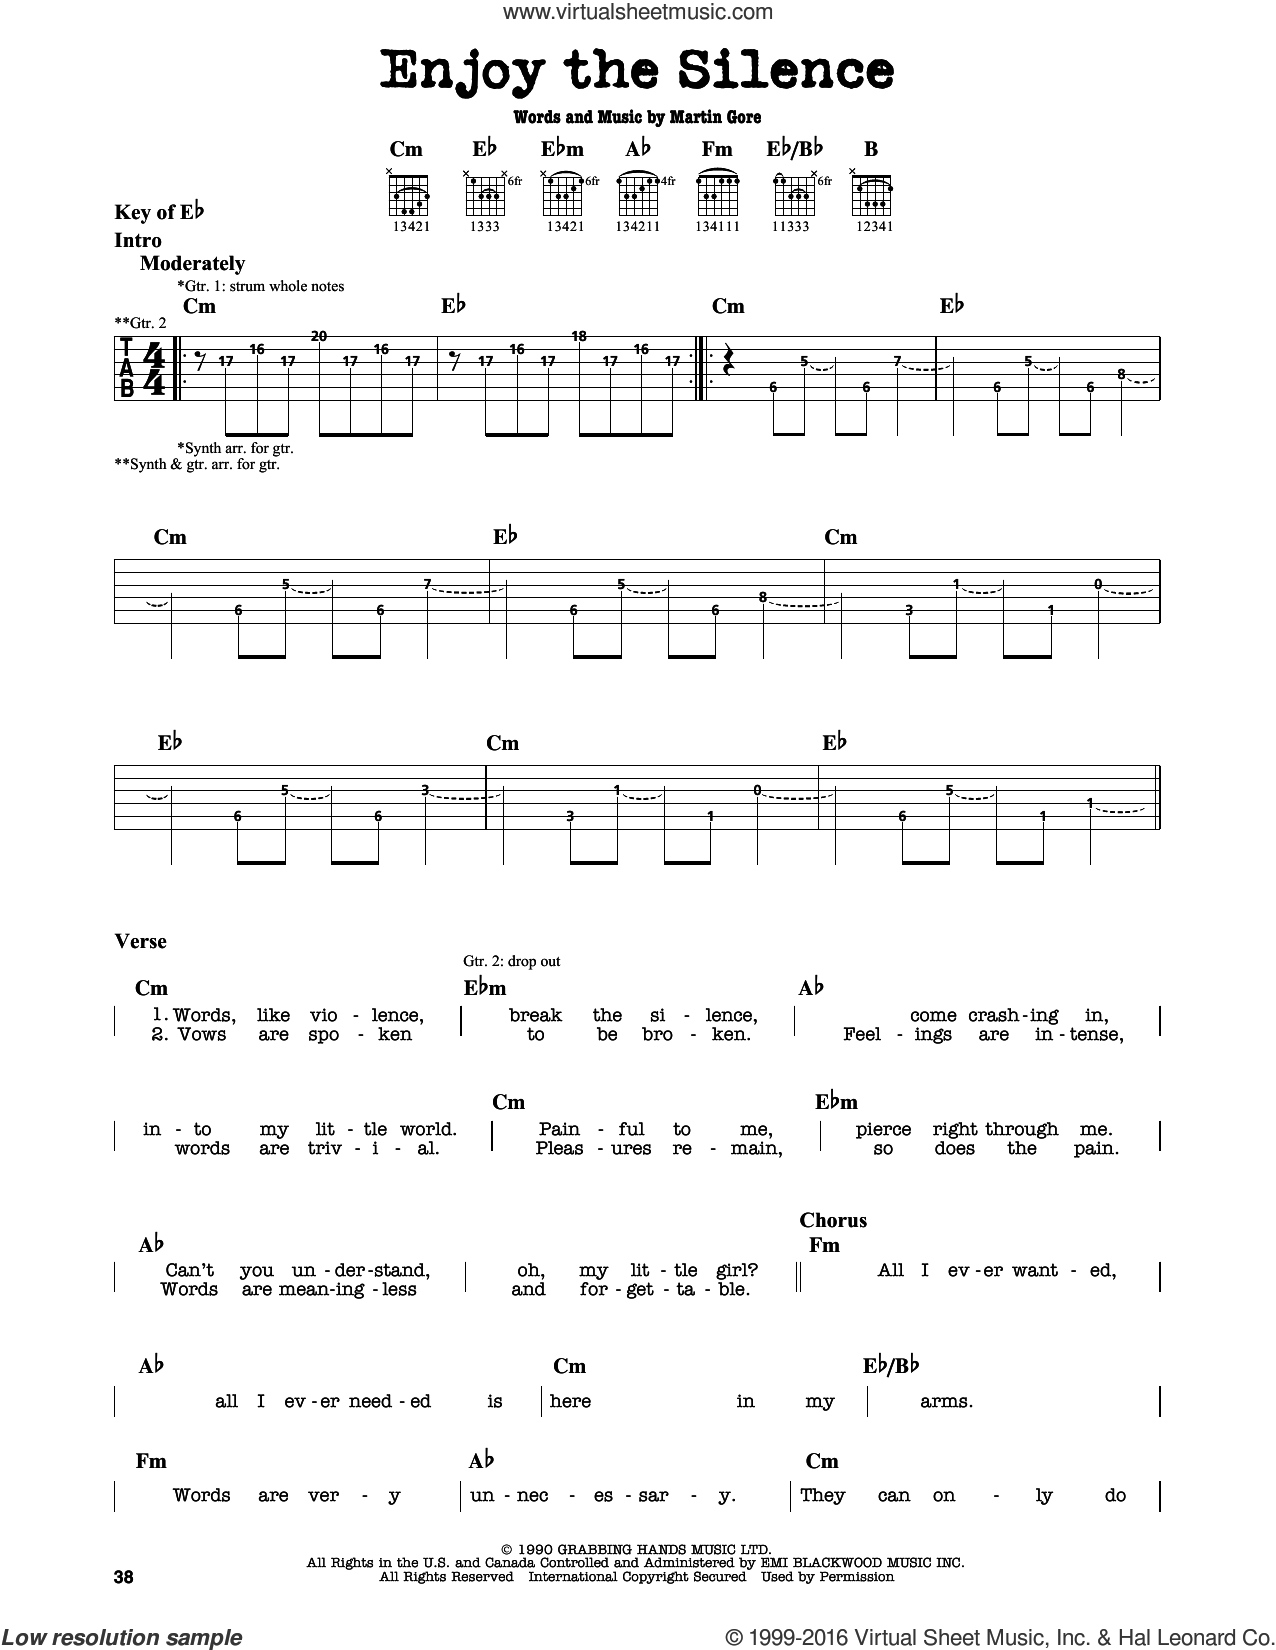 Enjoy The Silence sheet music for guitar solo (lead sheet) by Martin Gore